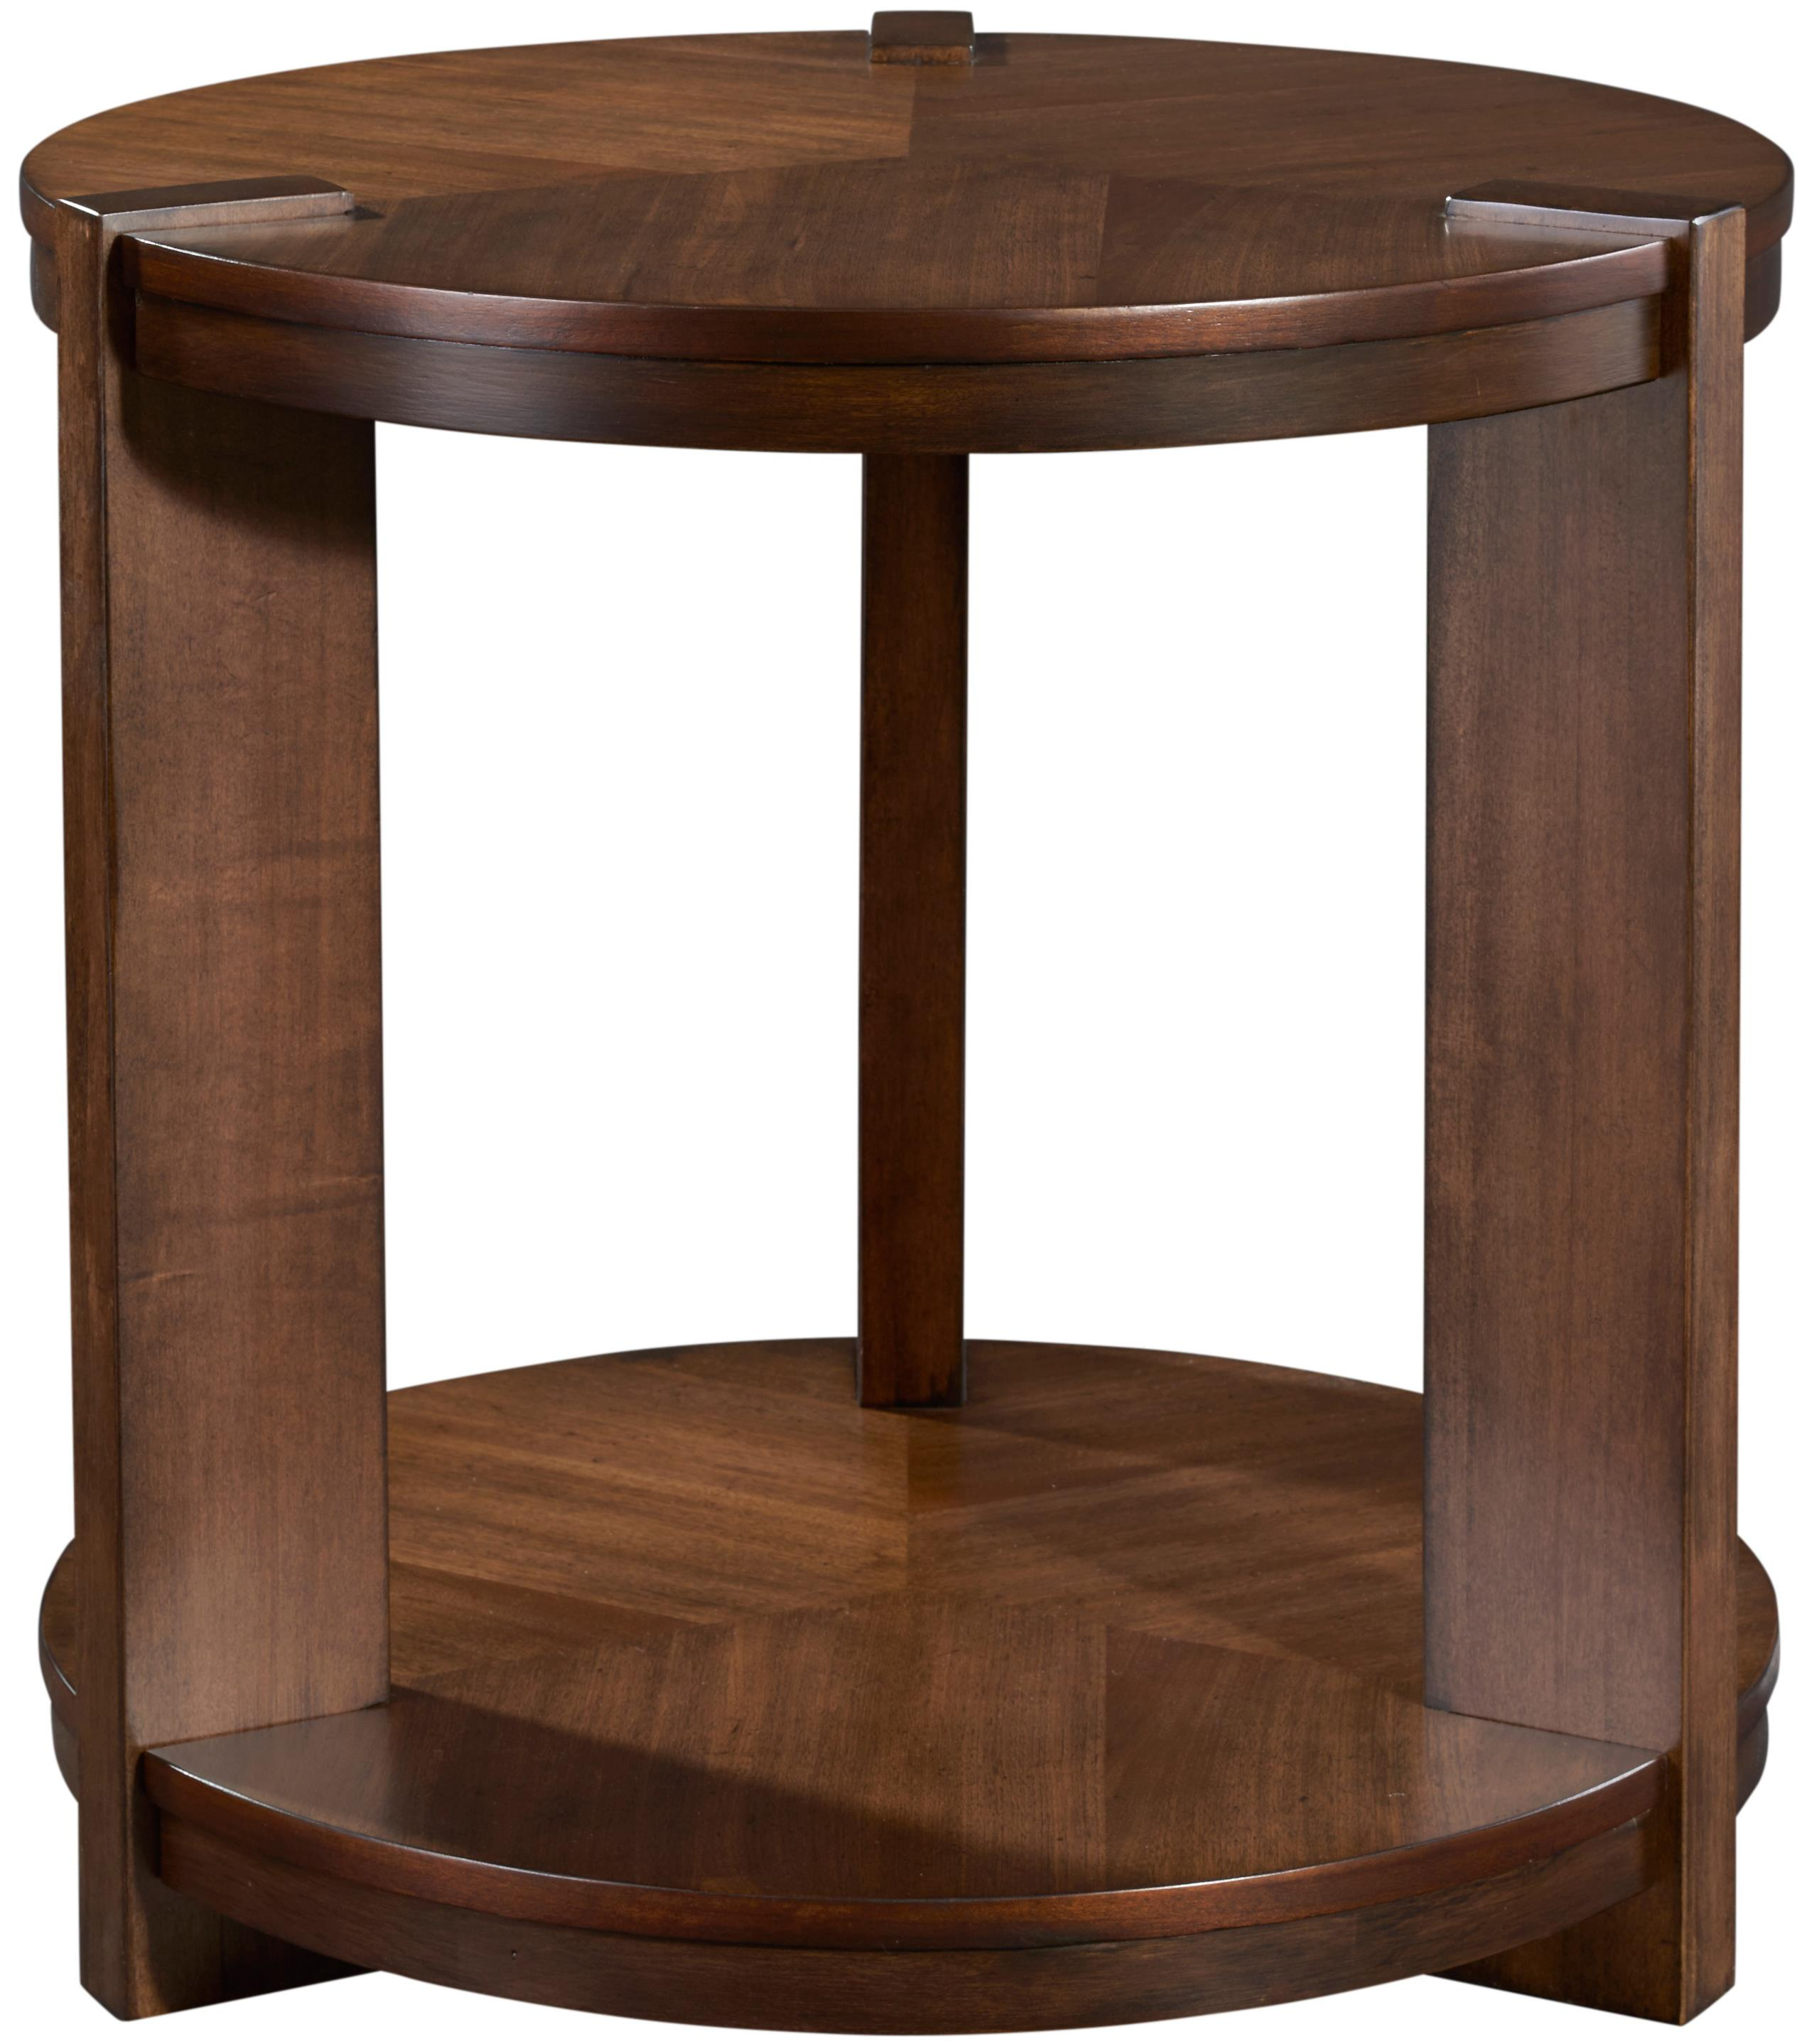 Broyhill Furniture Ryleigh Round End Table - Item Number: 3185-002